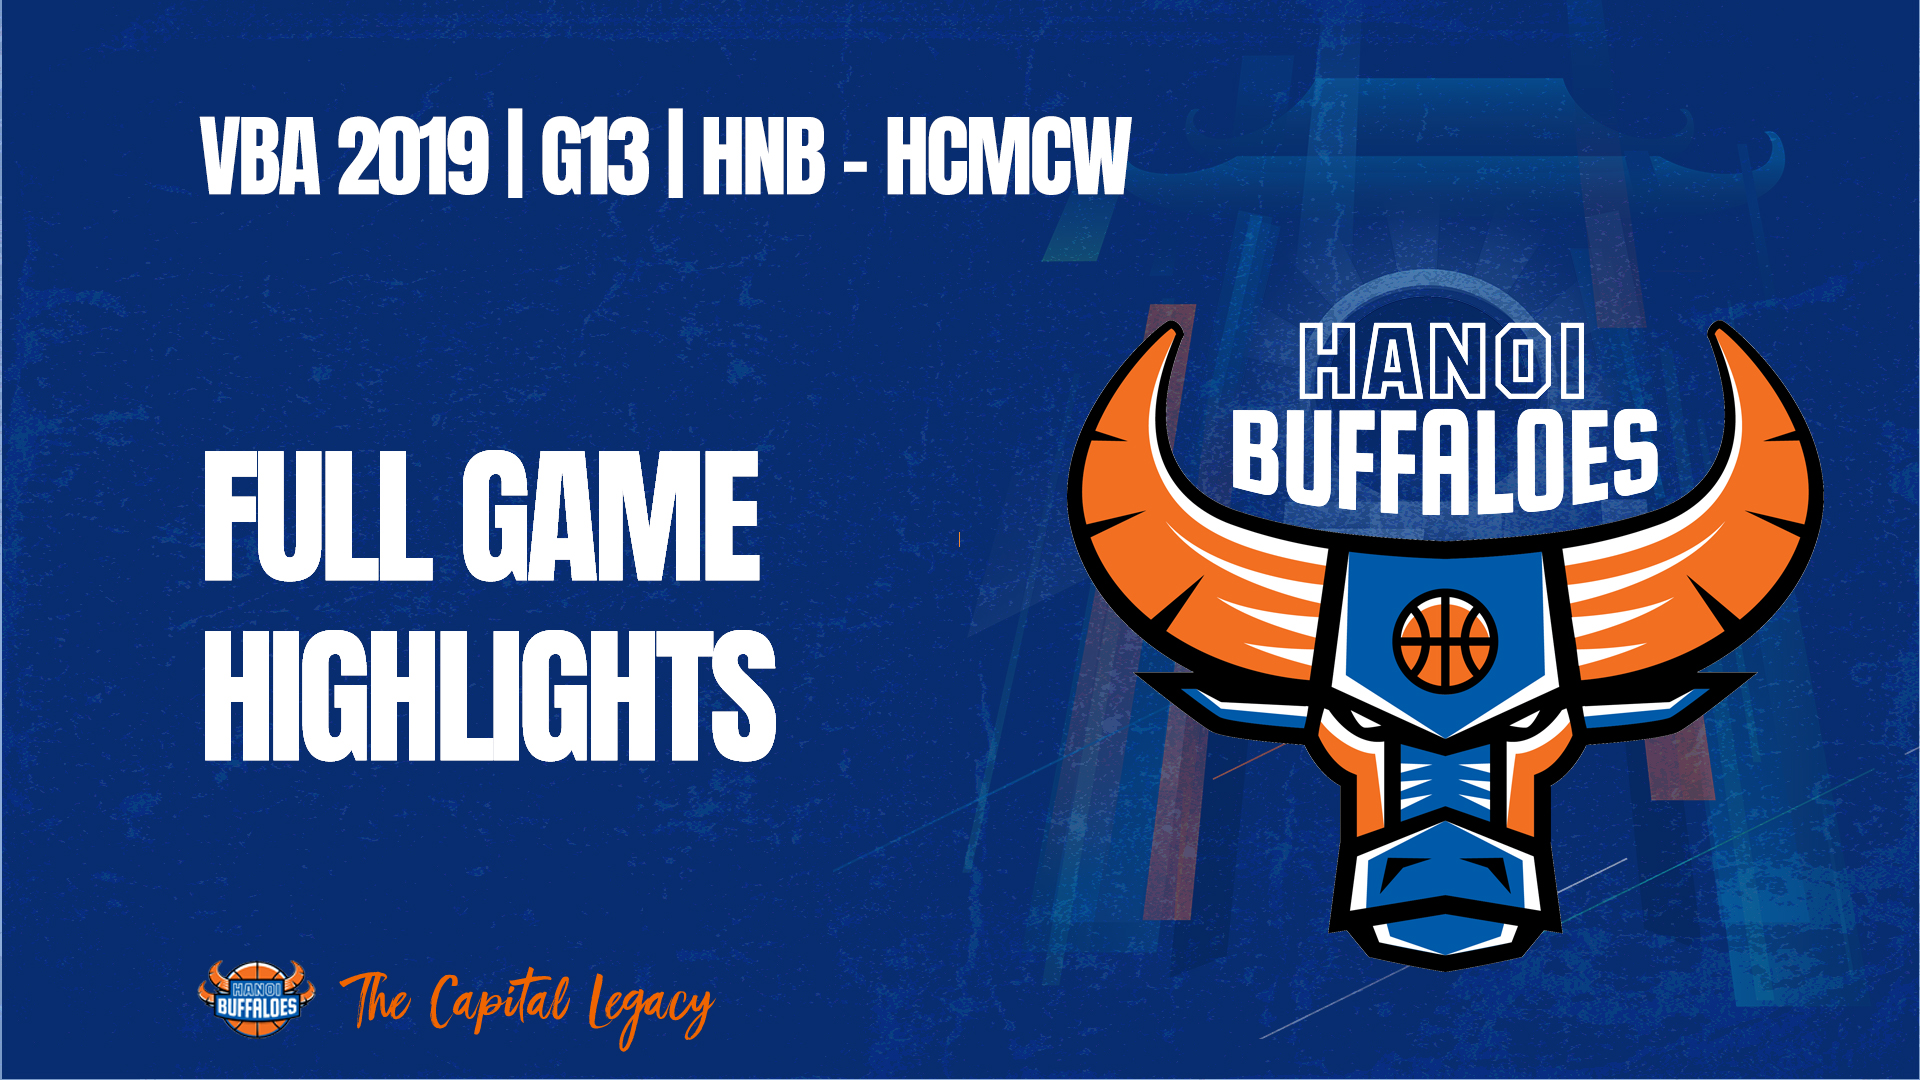 VBA 2019 | Game 13 | HNB vs HCMCW | Full game highlights